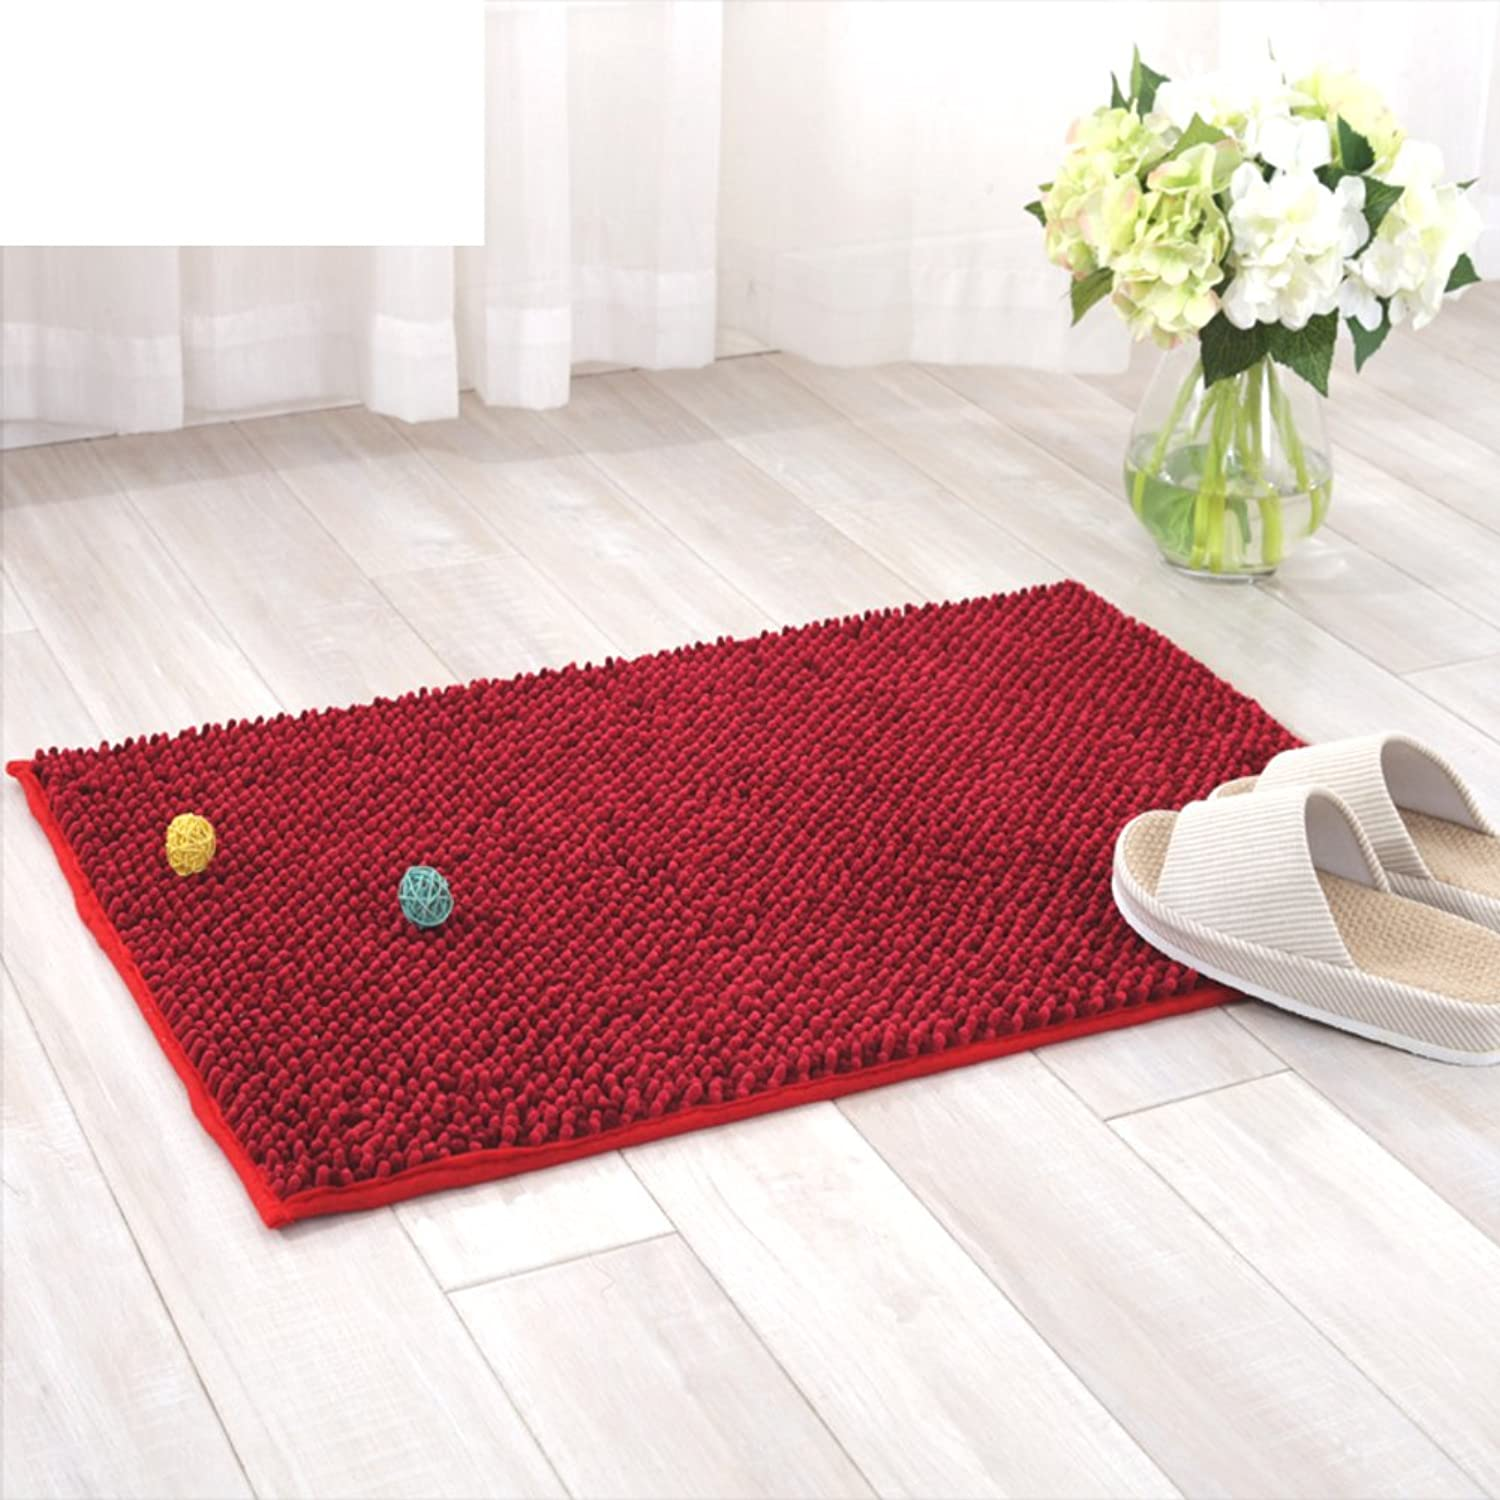 Chenille mat Doormat Enter Kitchen Restroom Bathroom Foot Pad Thick Absorbent Non-Slip mat-F 50x80cm(20x31inch)